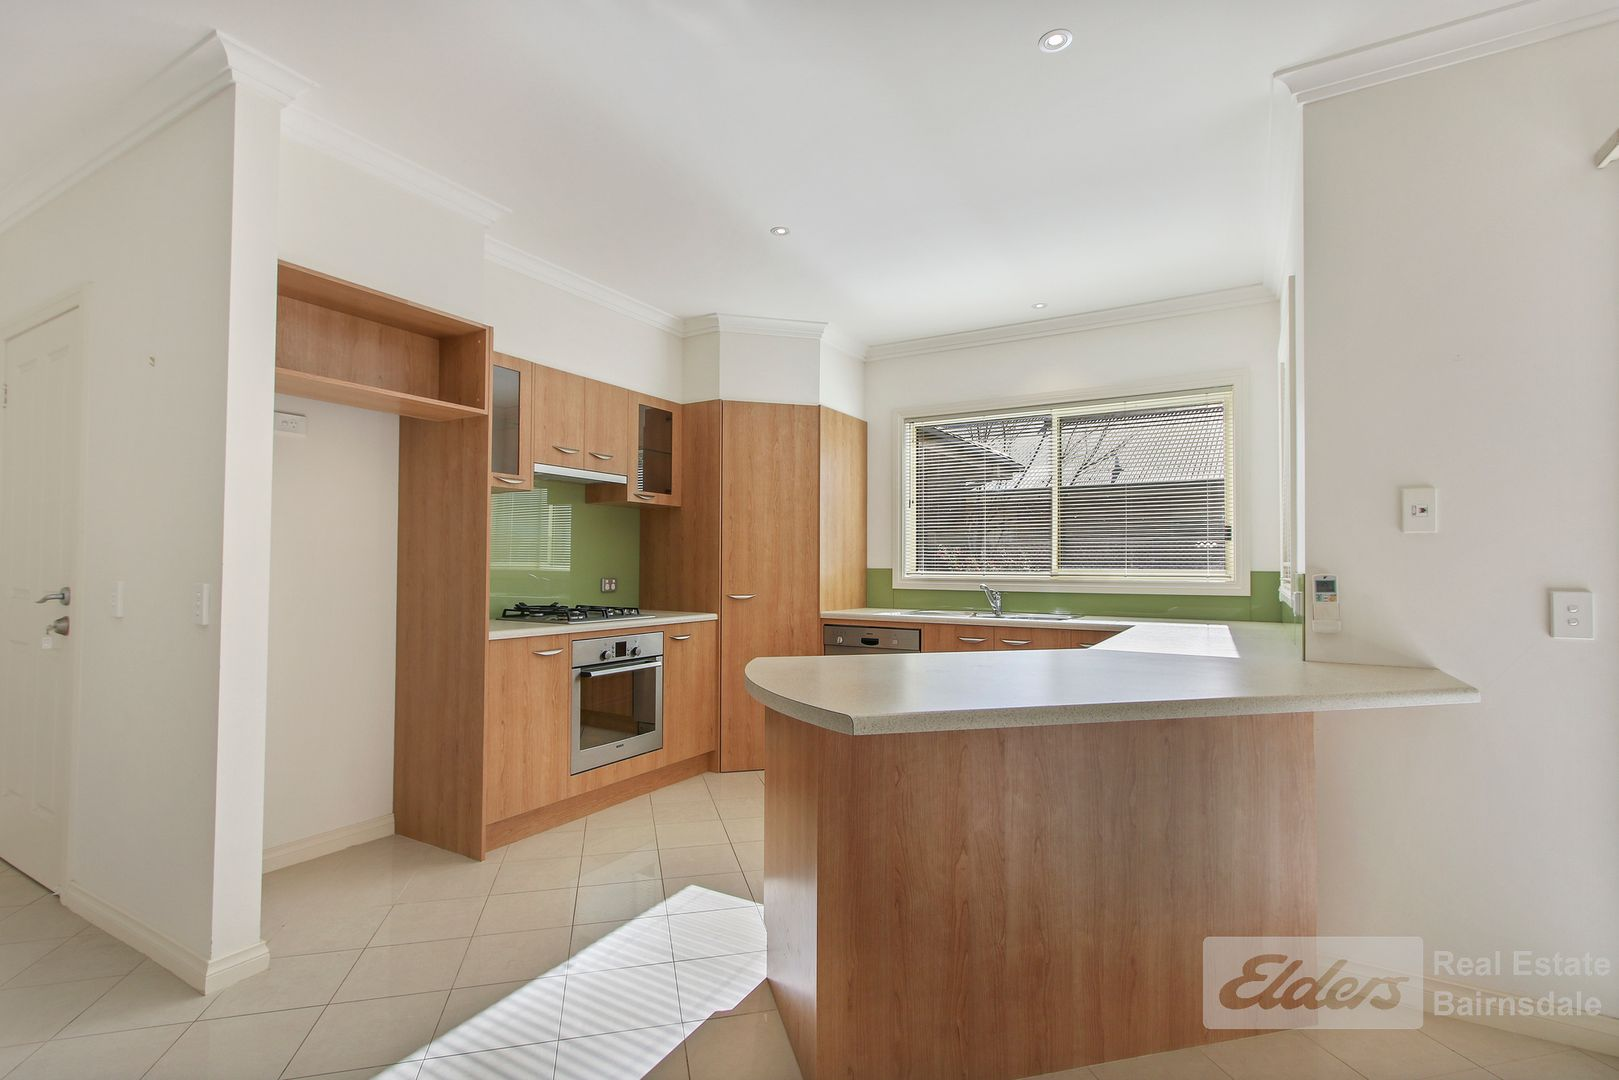 12 Birchwood Court, Bairnsdale VIC 3875, Image 2